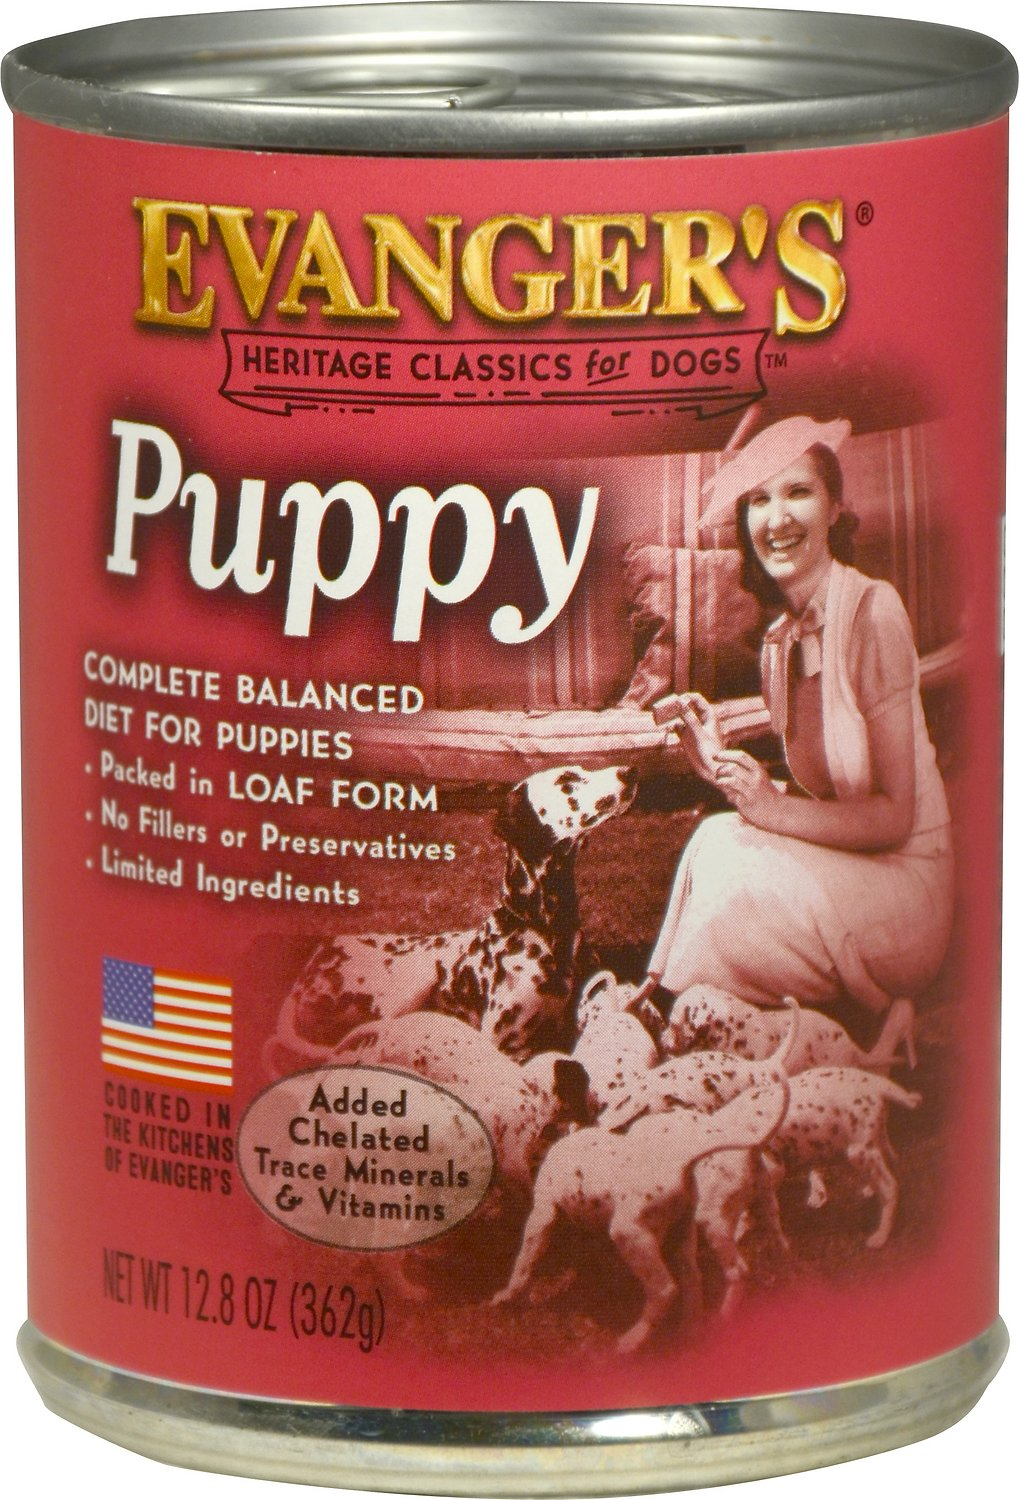 Evanger's Classic Recipes Puppy Canned Dog Food, 12.8-oz